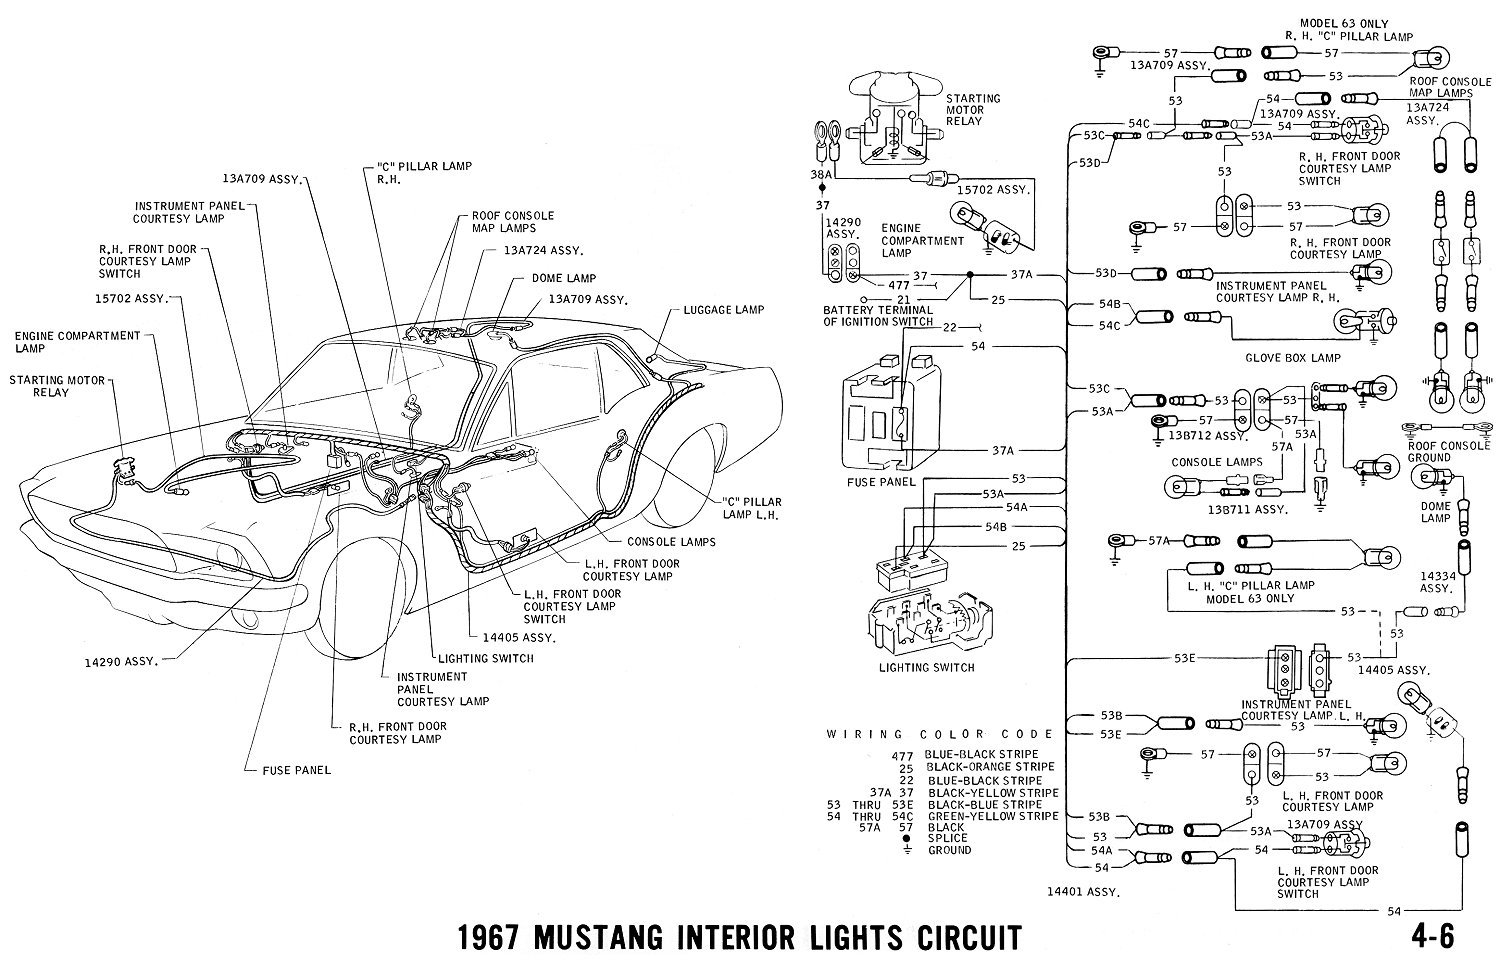 2010 ford mustang wiring diagram lights 68 mustang underdash wiring looking at the wiring 1999 mustang wiring diagram lights